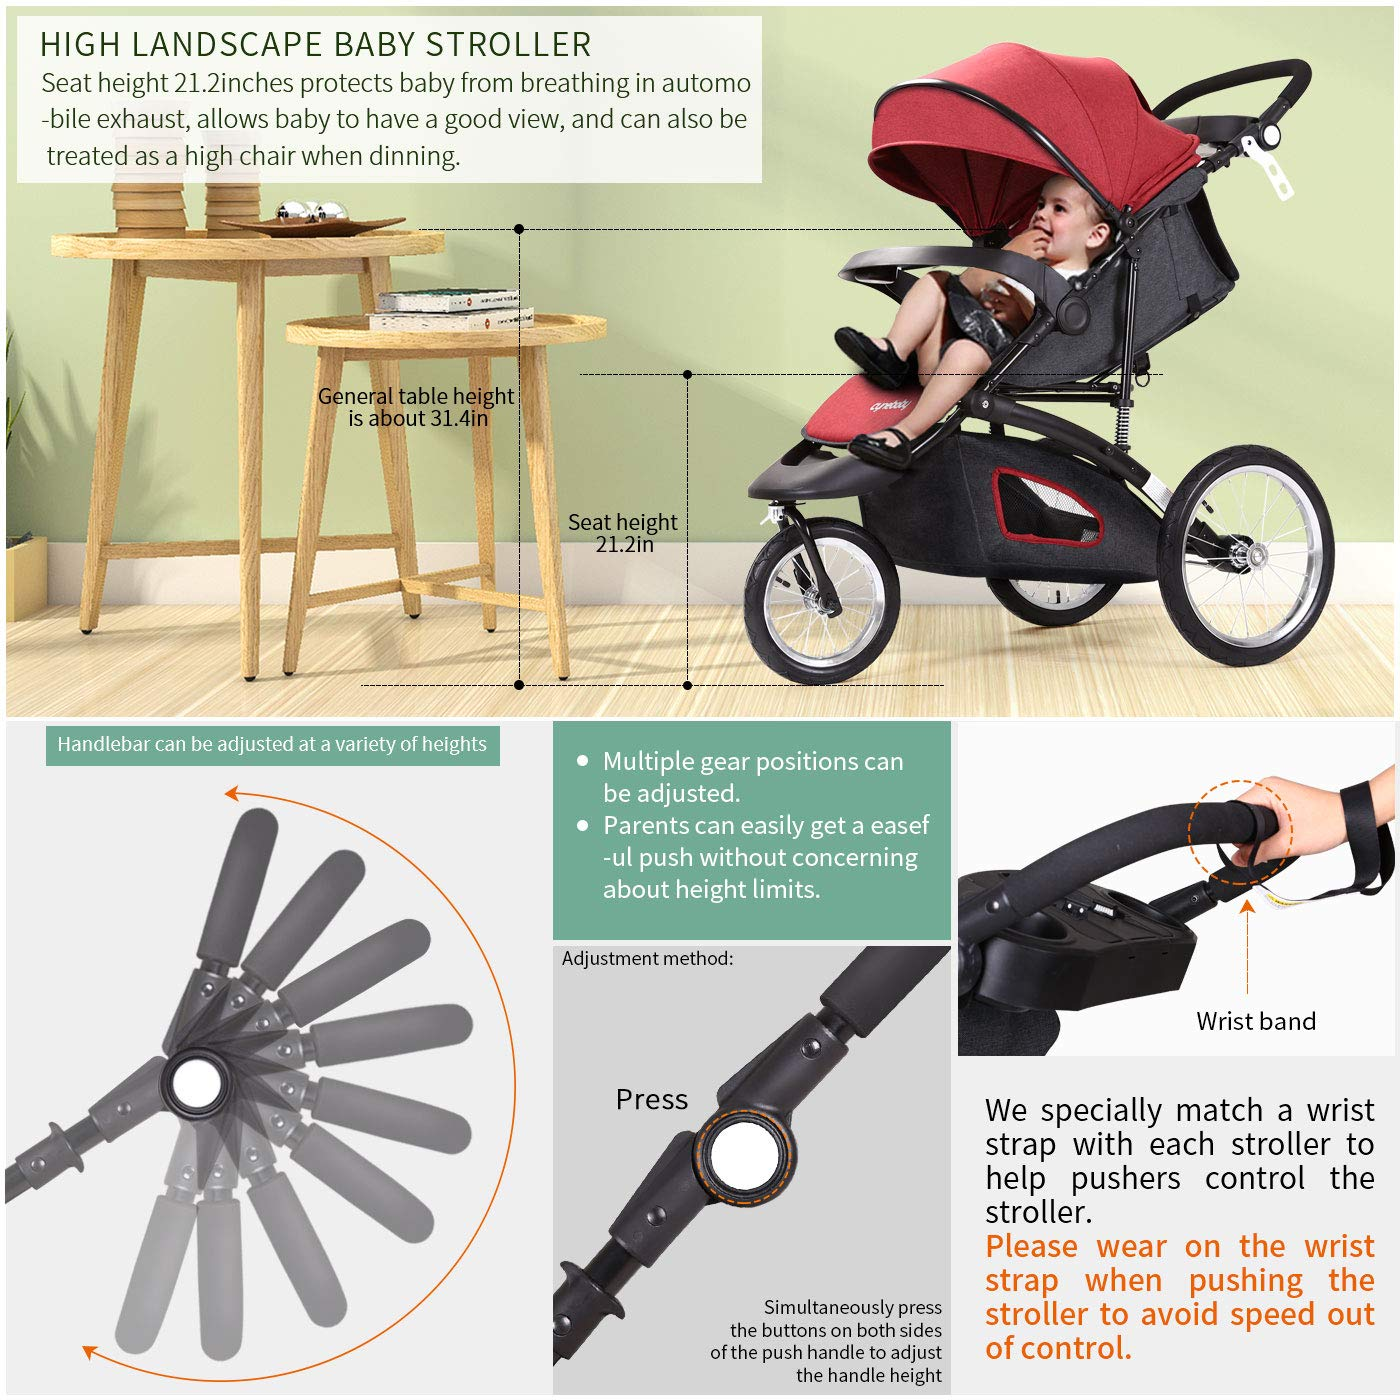 Jogging Stroller Fold City Baby Jogger Travel Citi Jog Strollers Single Toddler Baby Pram Jogging Compact Urban Ultralight Joggers Beby Carriage Pushchair Stroller Travel System by Cynebaby / HAIXIAO (Image #3)